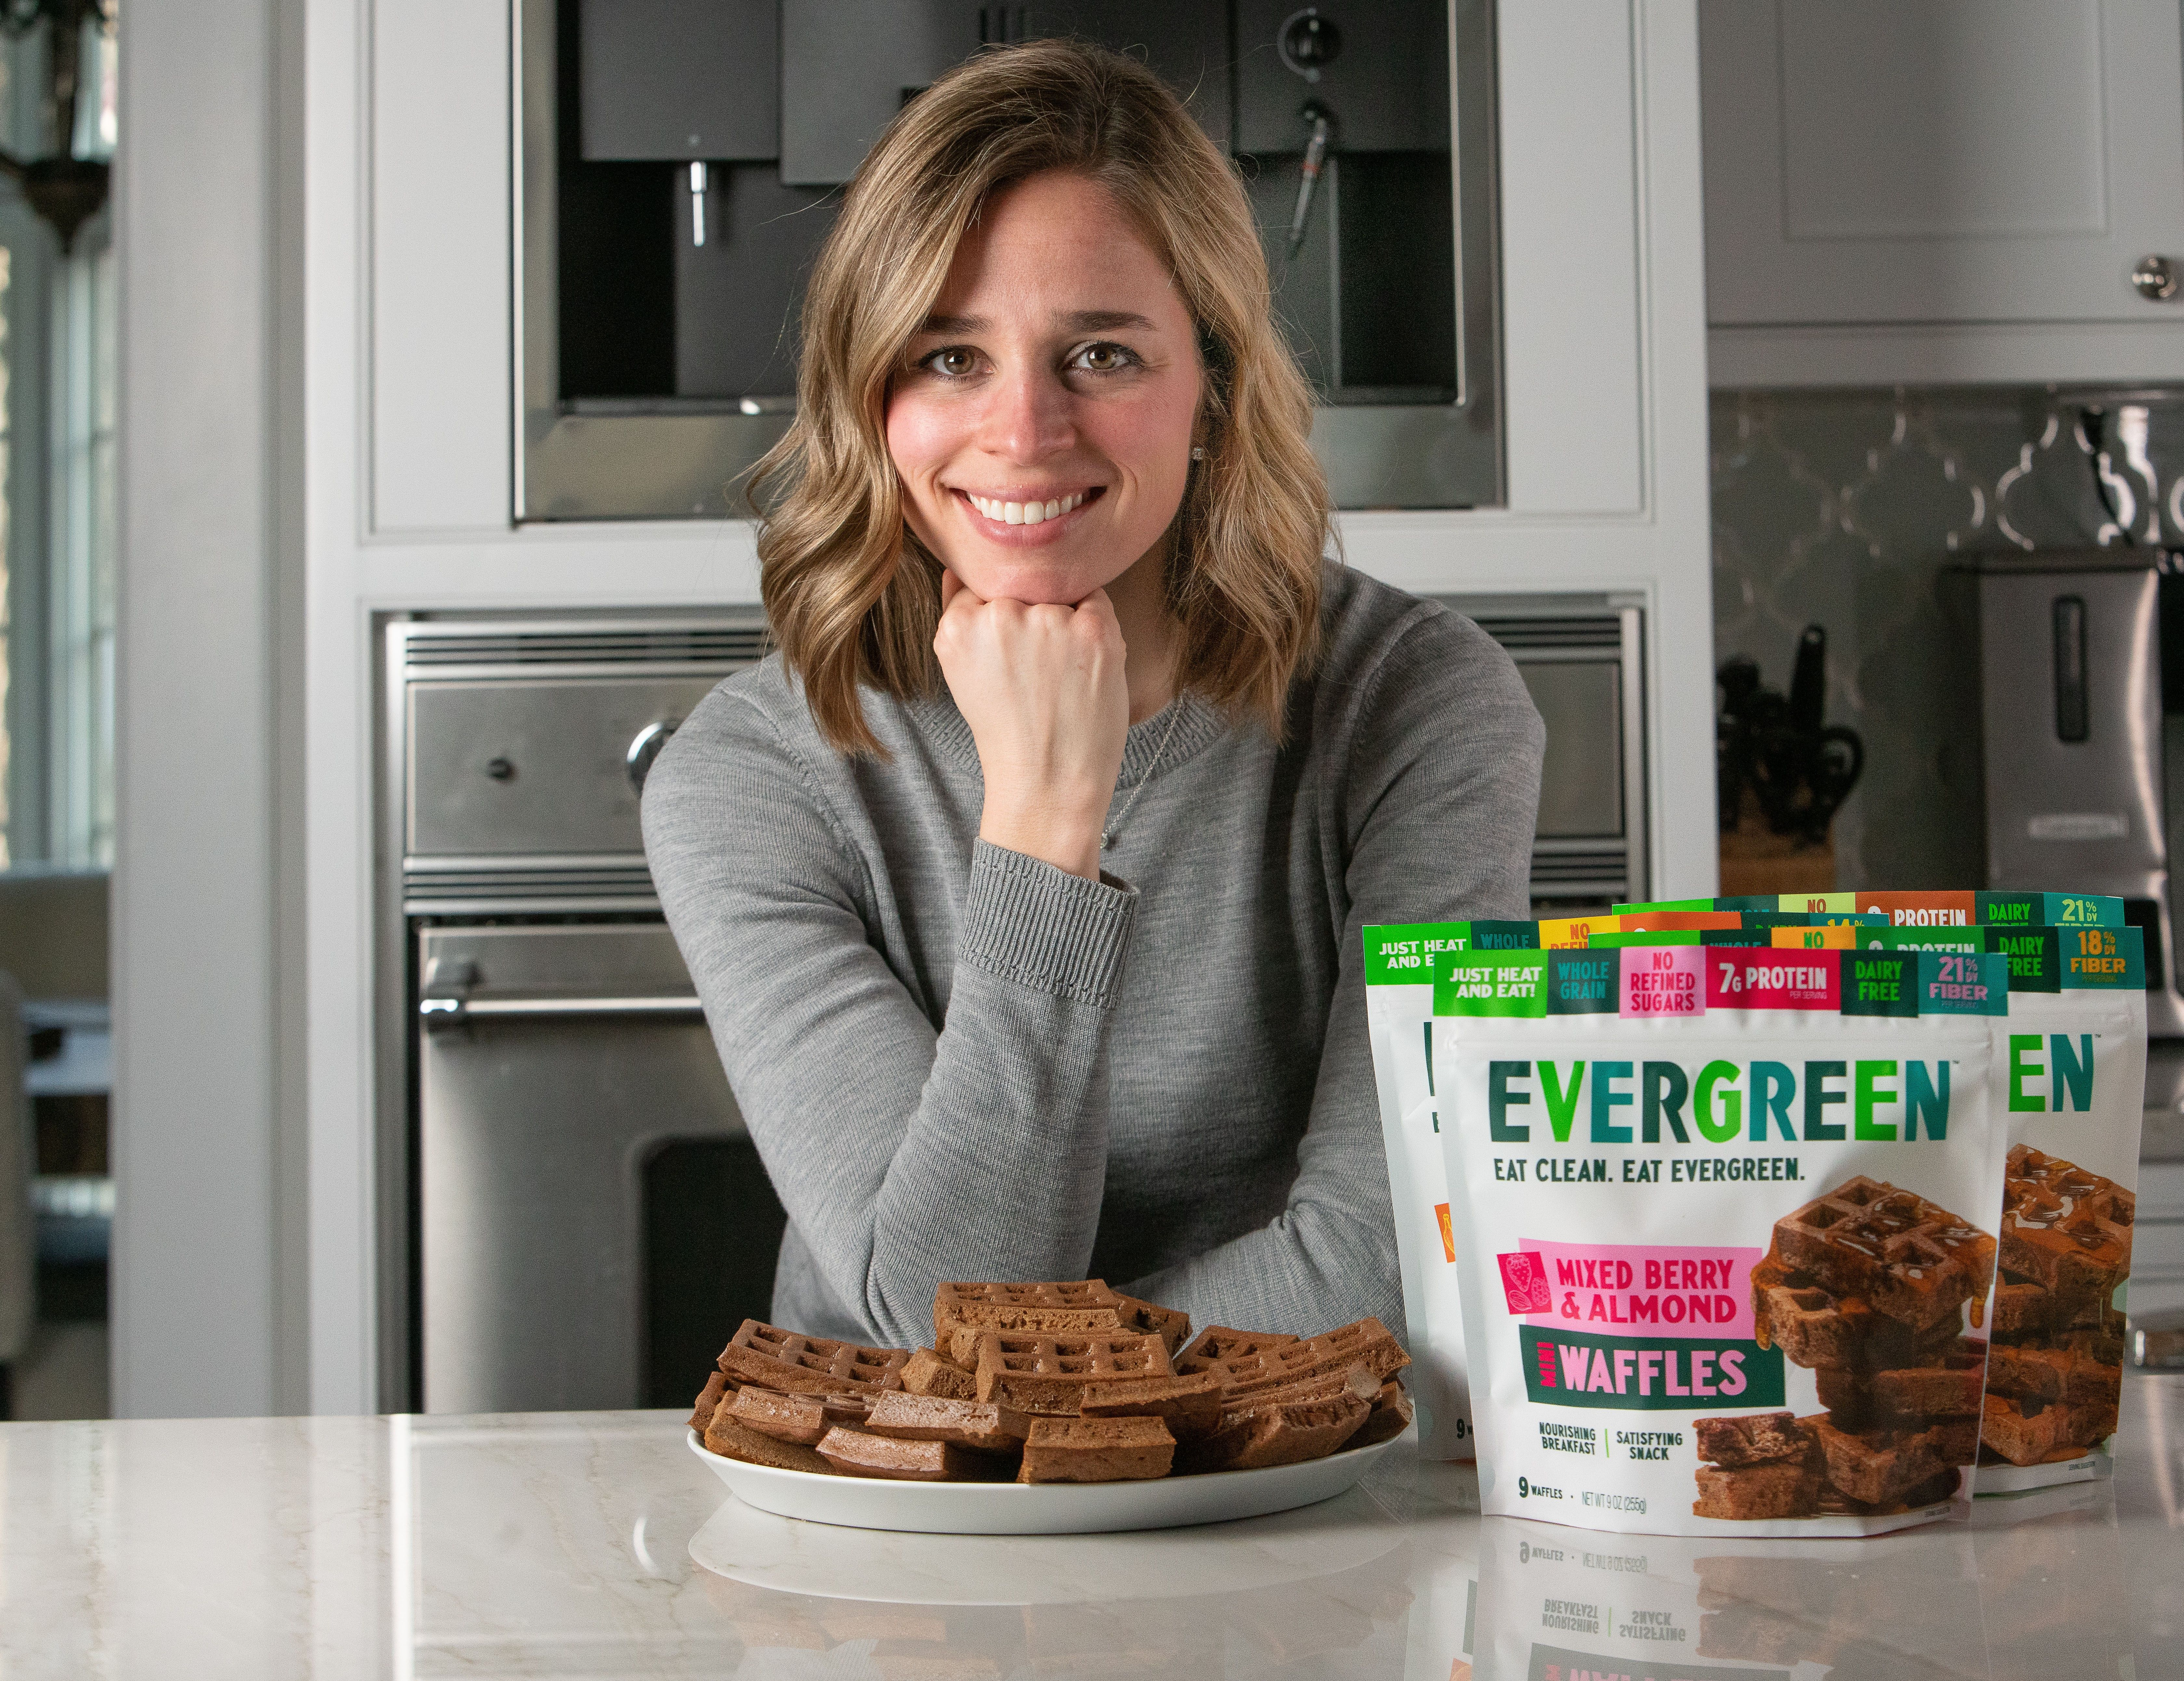 Emily Groden, Chief Executive Officer and founder of Evergreen, a new Chicago-based healthy frozen waffle company.